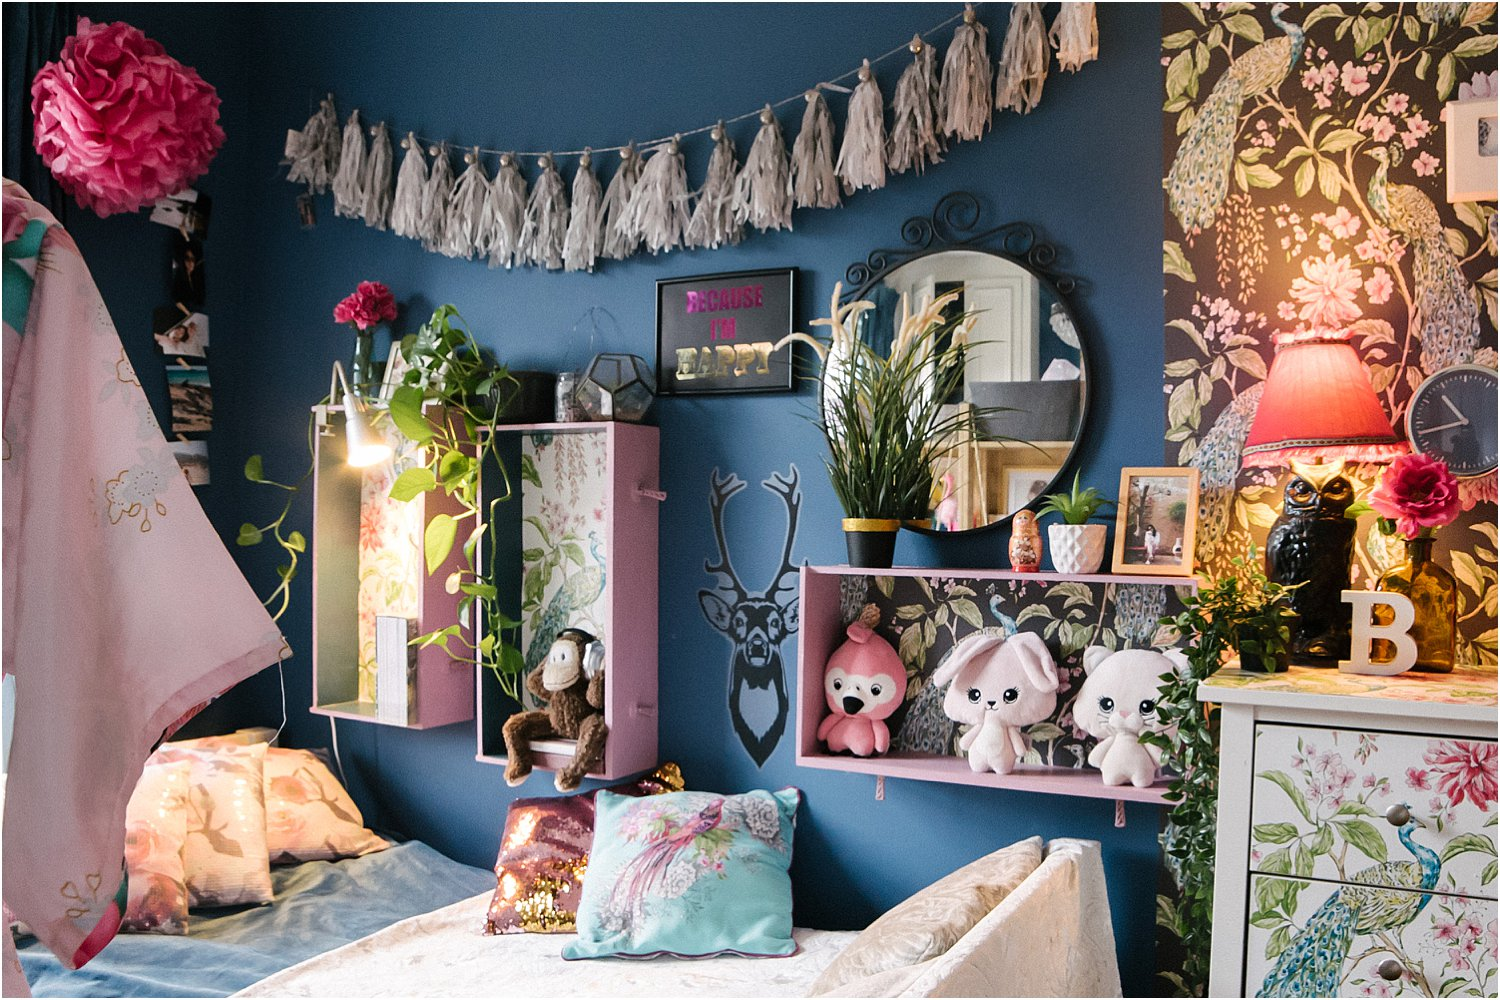 diy-upcycle-replace-dark-eclectic-maximalist-interiors-vintage-lily-sawyer-photo